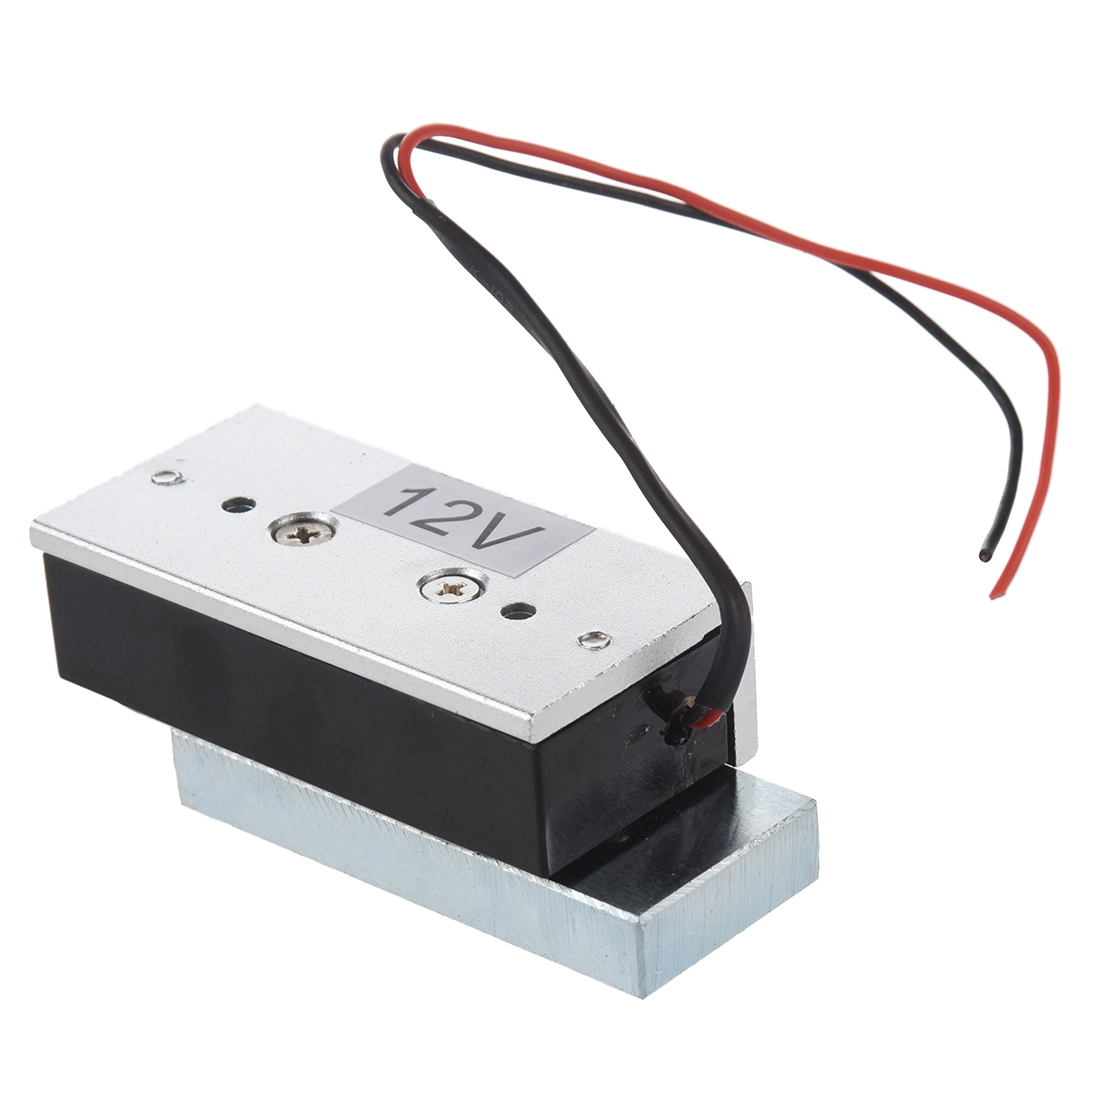 Wholesale 60kg 130LBs Holding Force Electric Magnetic Lock for Door Access Control System Electromagnet Fail-Safe NC Mode new arrival 1000 kg 2200lb holding force electric shear magnetic lock for access control or intercom system